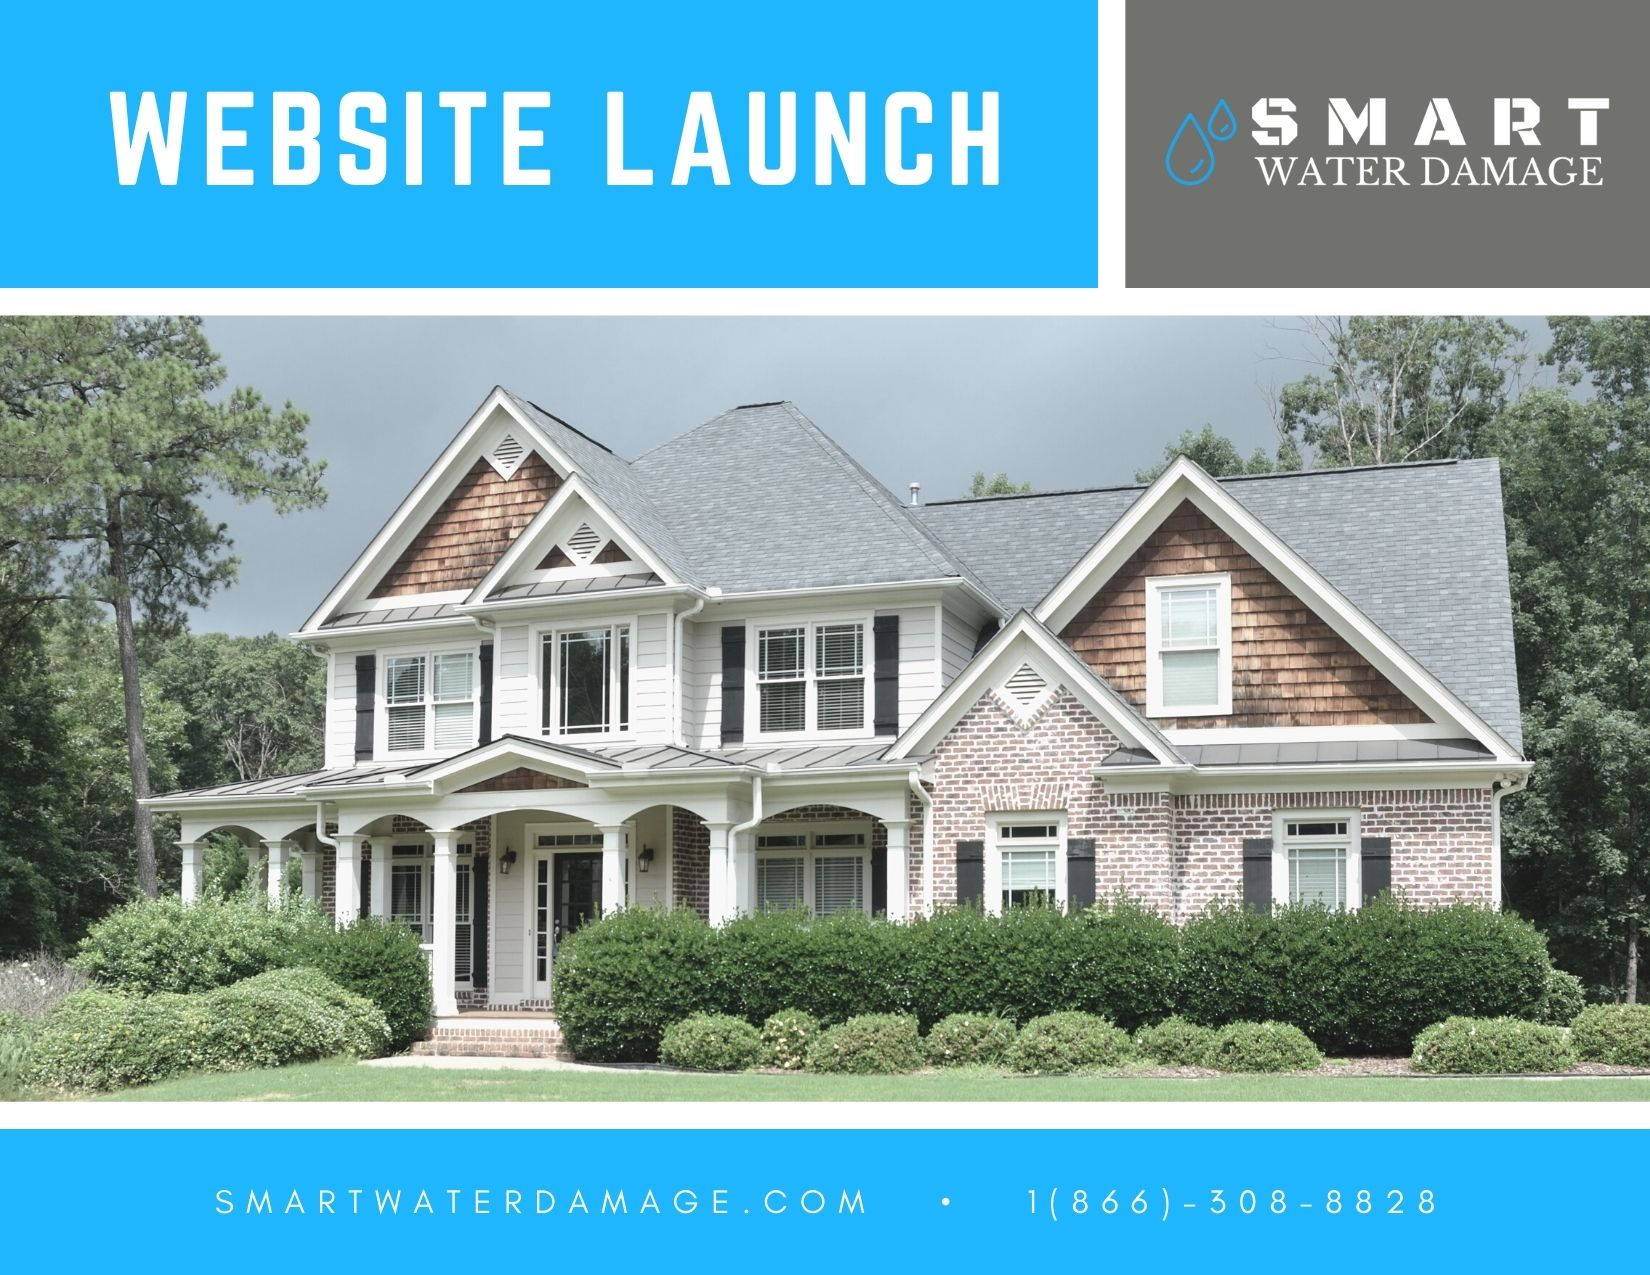 Smart Water Damage Connecting Home and Business Owners with Water & Fire Damage Remediation Experts